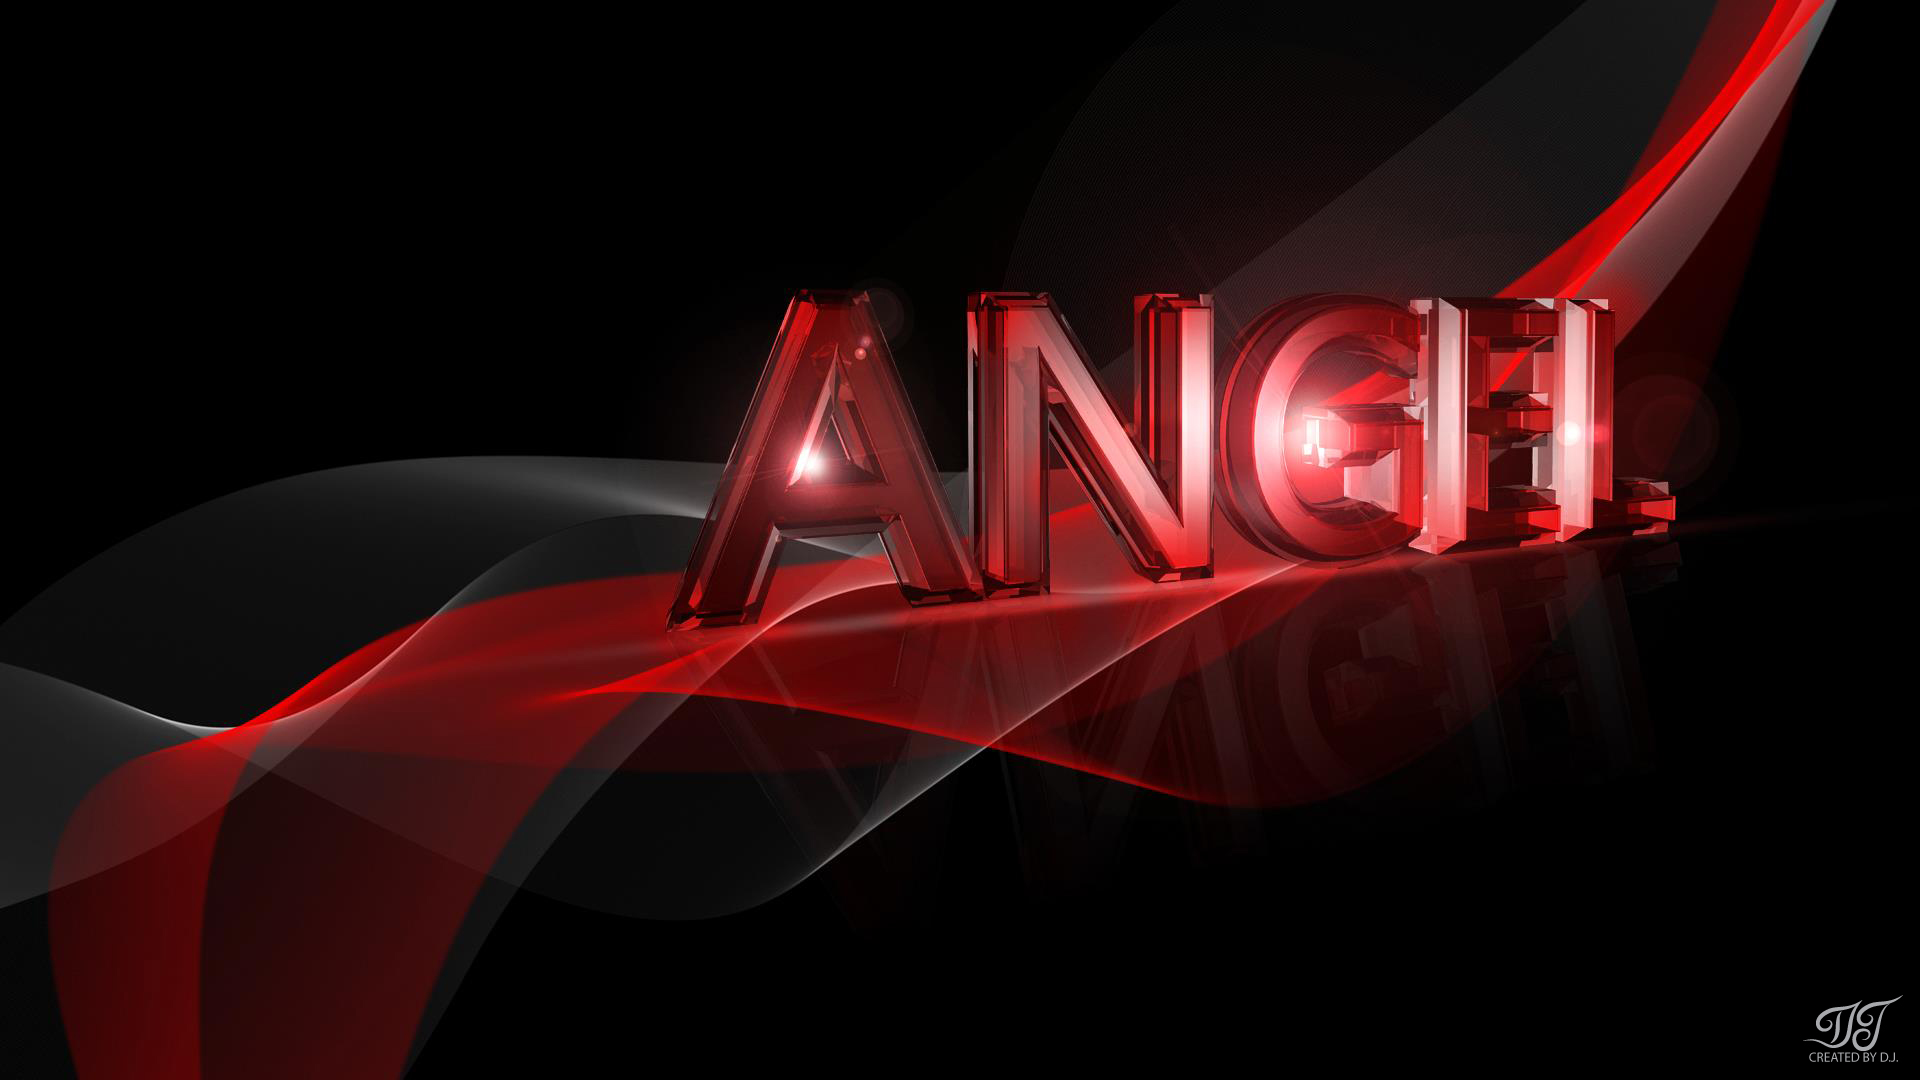 Angel Name Wallpaper